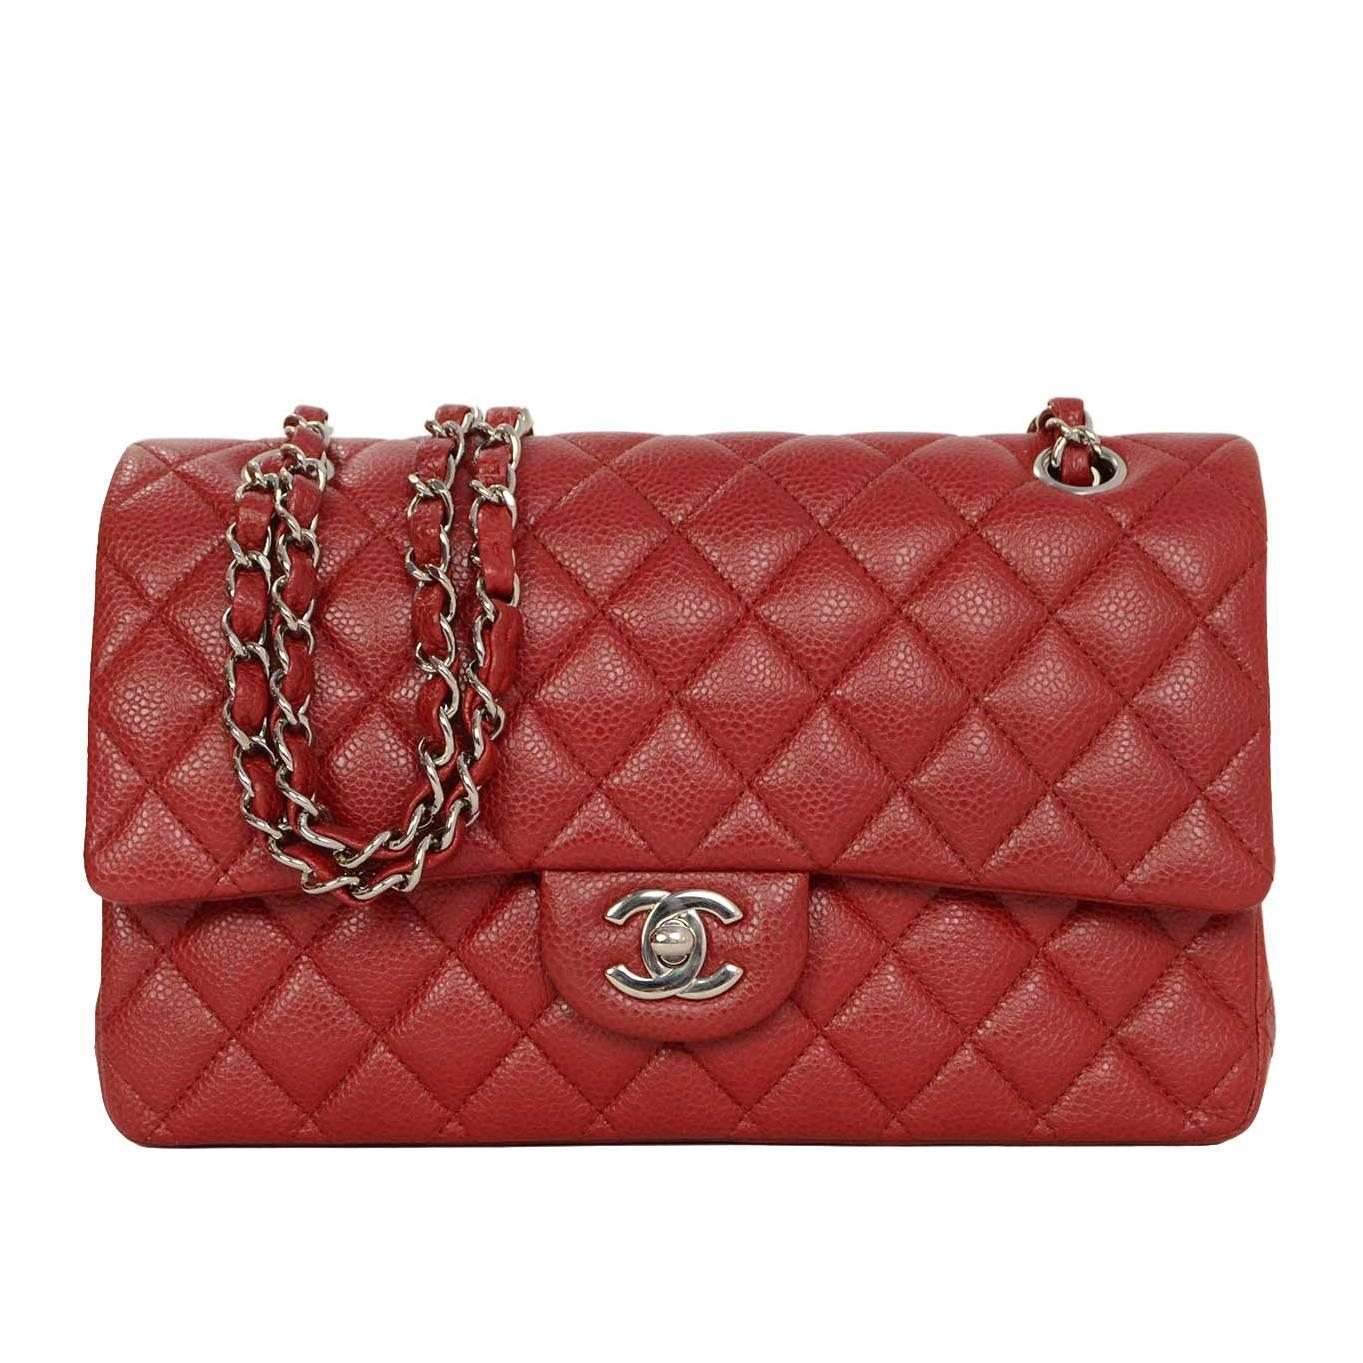 2019 year for women- Chanel red bag